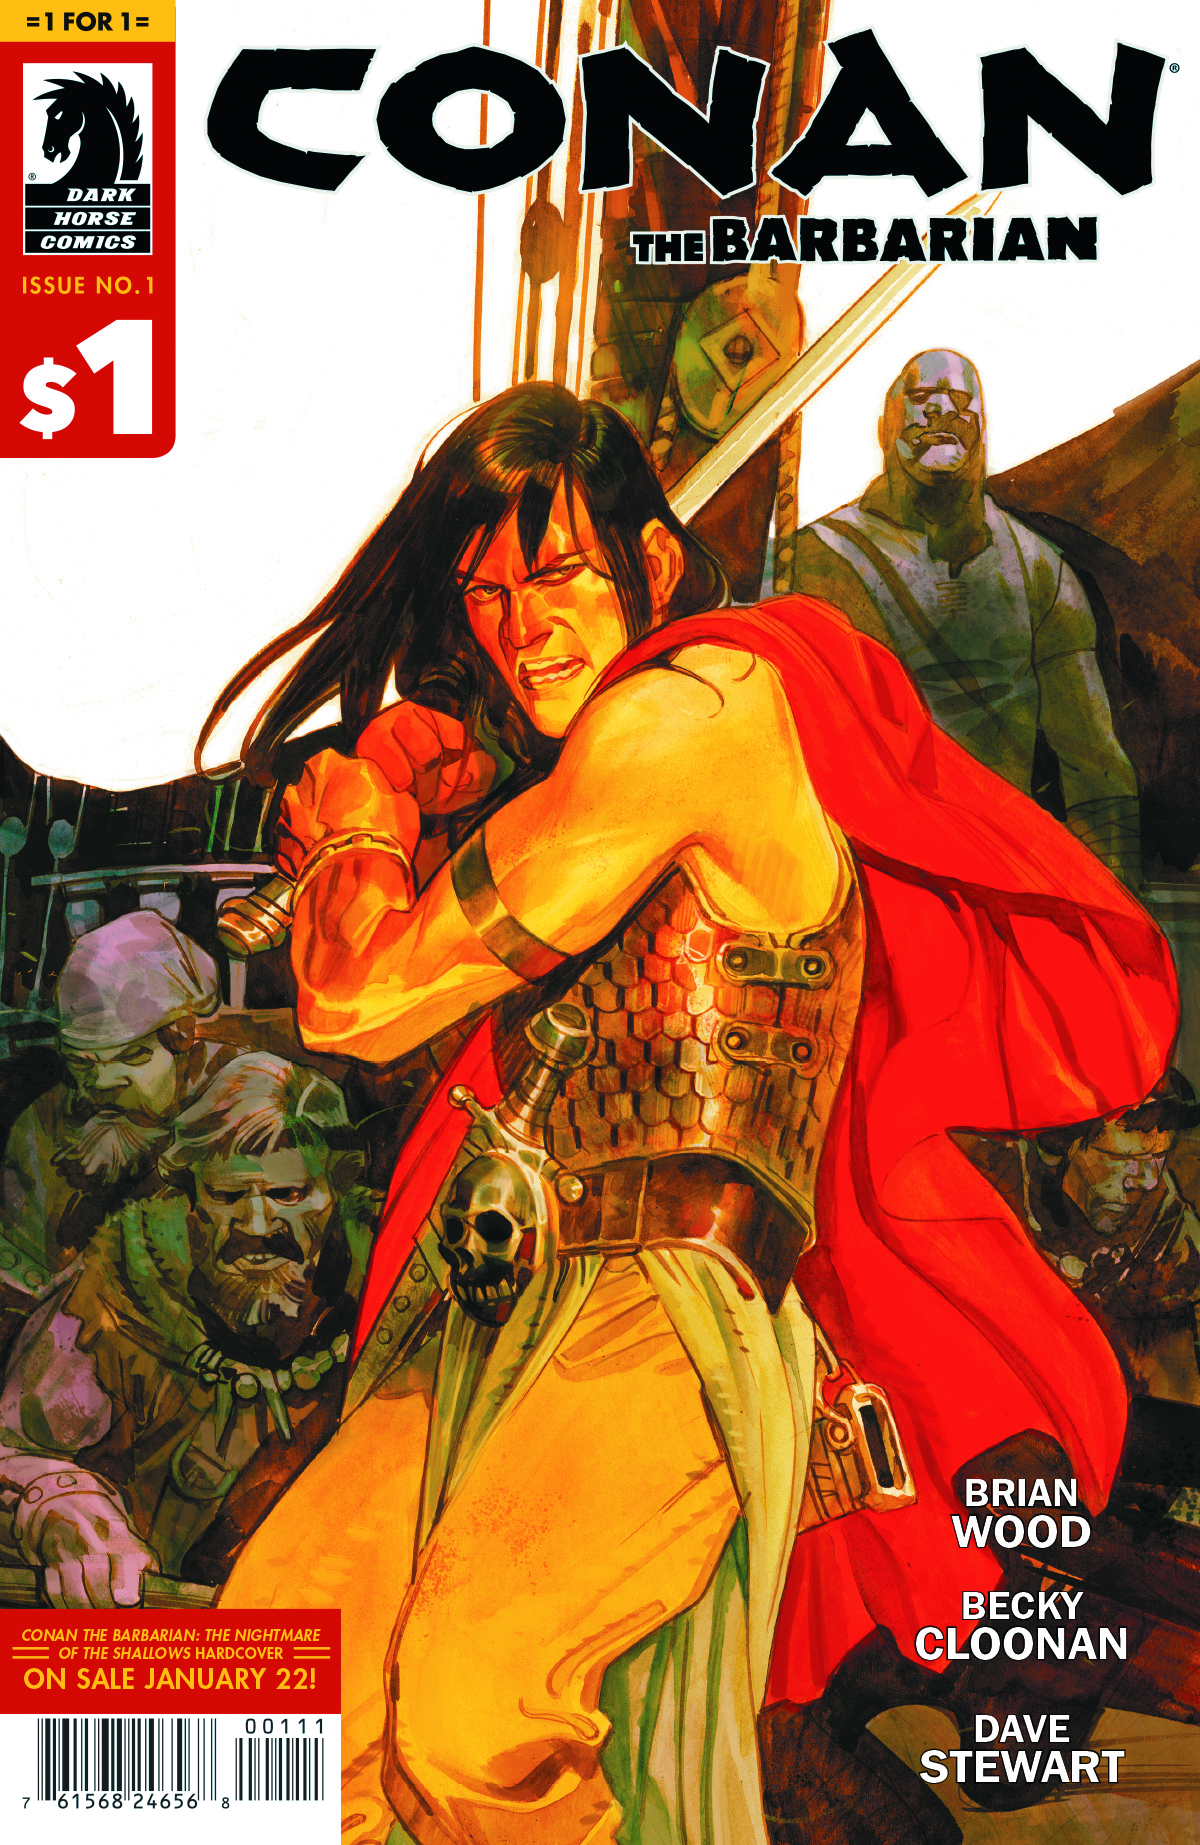 1 FOR $1 CONAN THE BARBARIAN #1